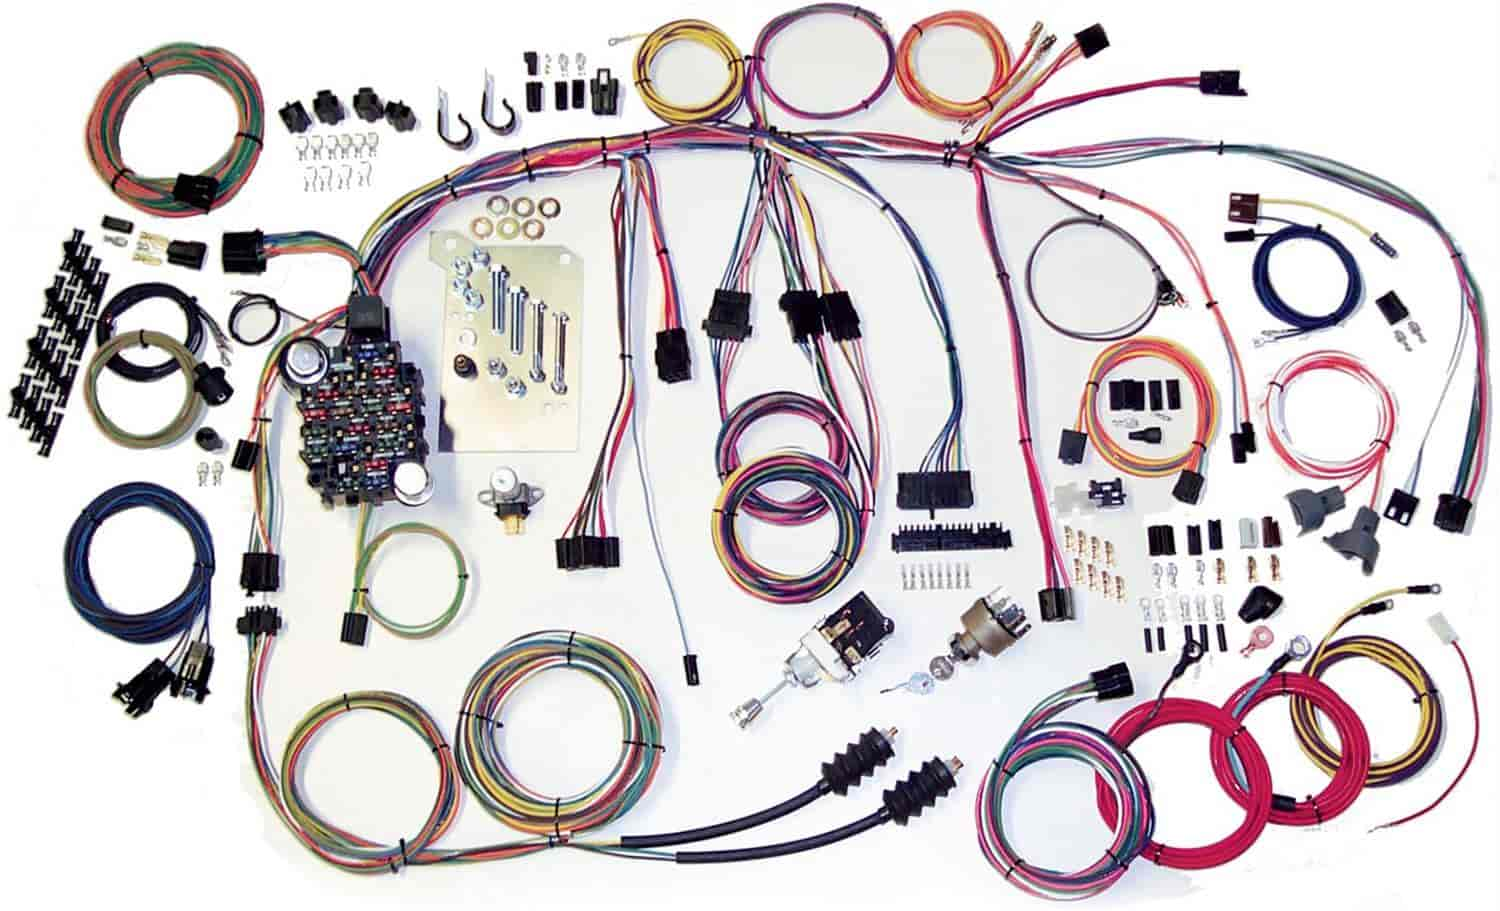 [DIAGRAM_38ZD]  American Autowire 500560: Classic Update Wiring Kit [1960-1966 Chevy Truck]  | JEGS | 1966 Chevy Wiring |  | Jegs